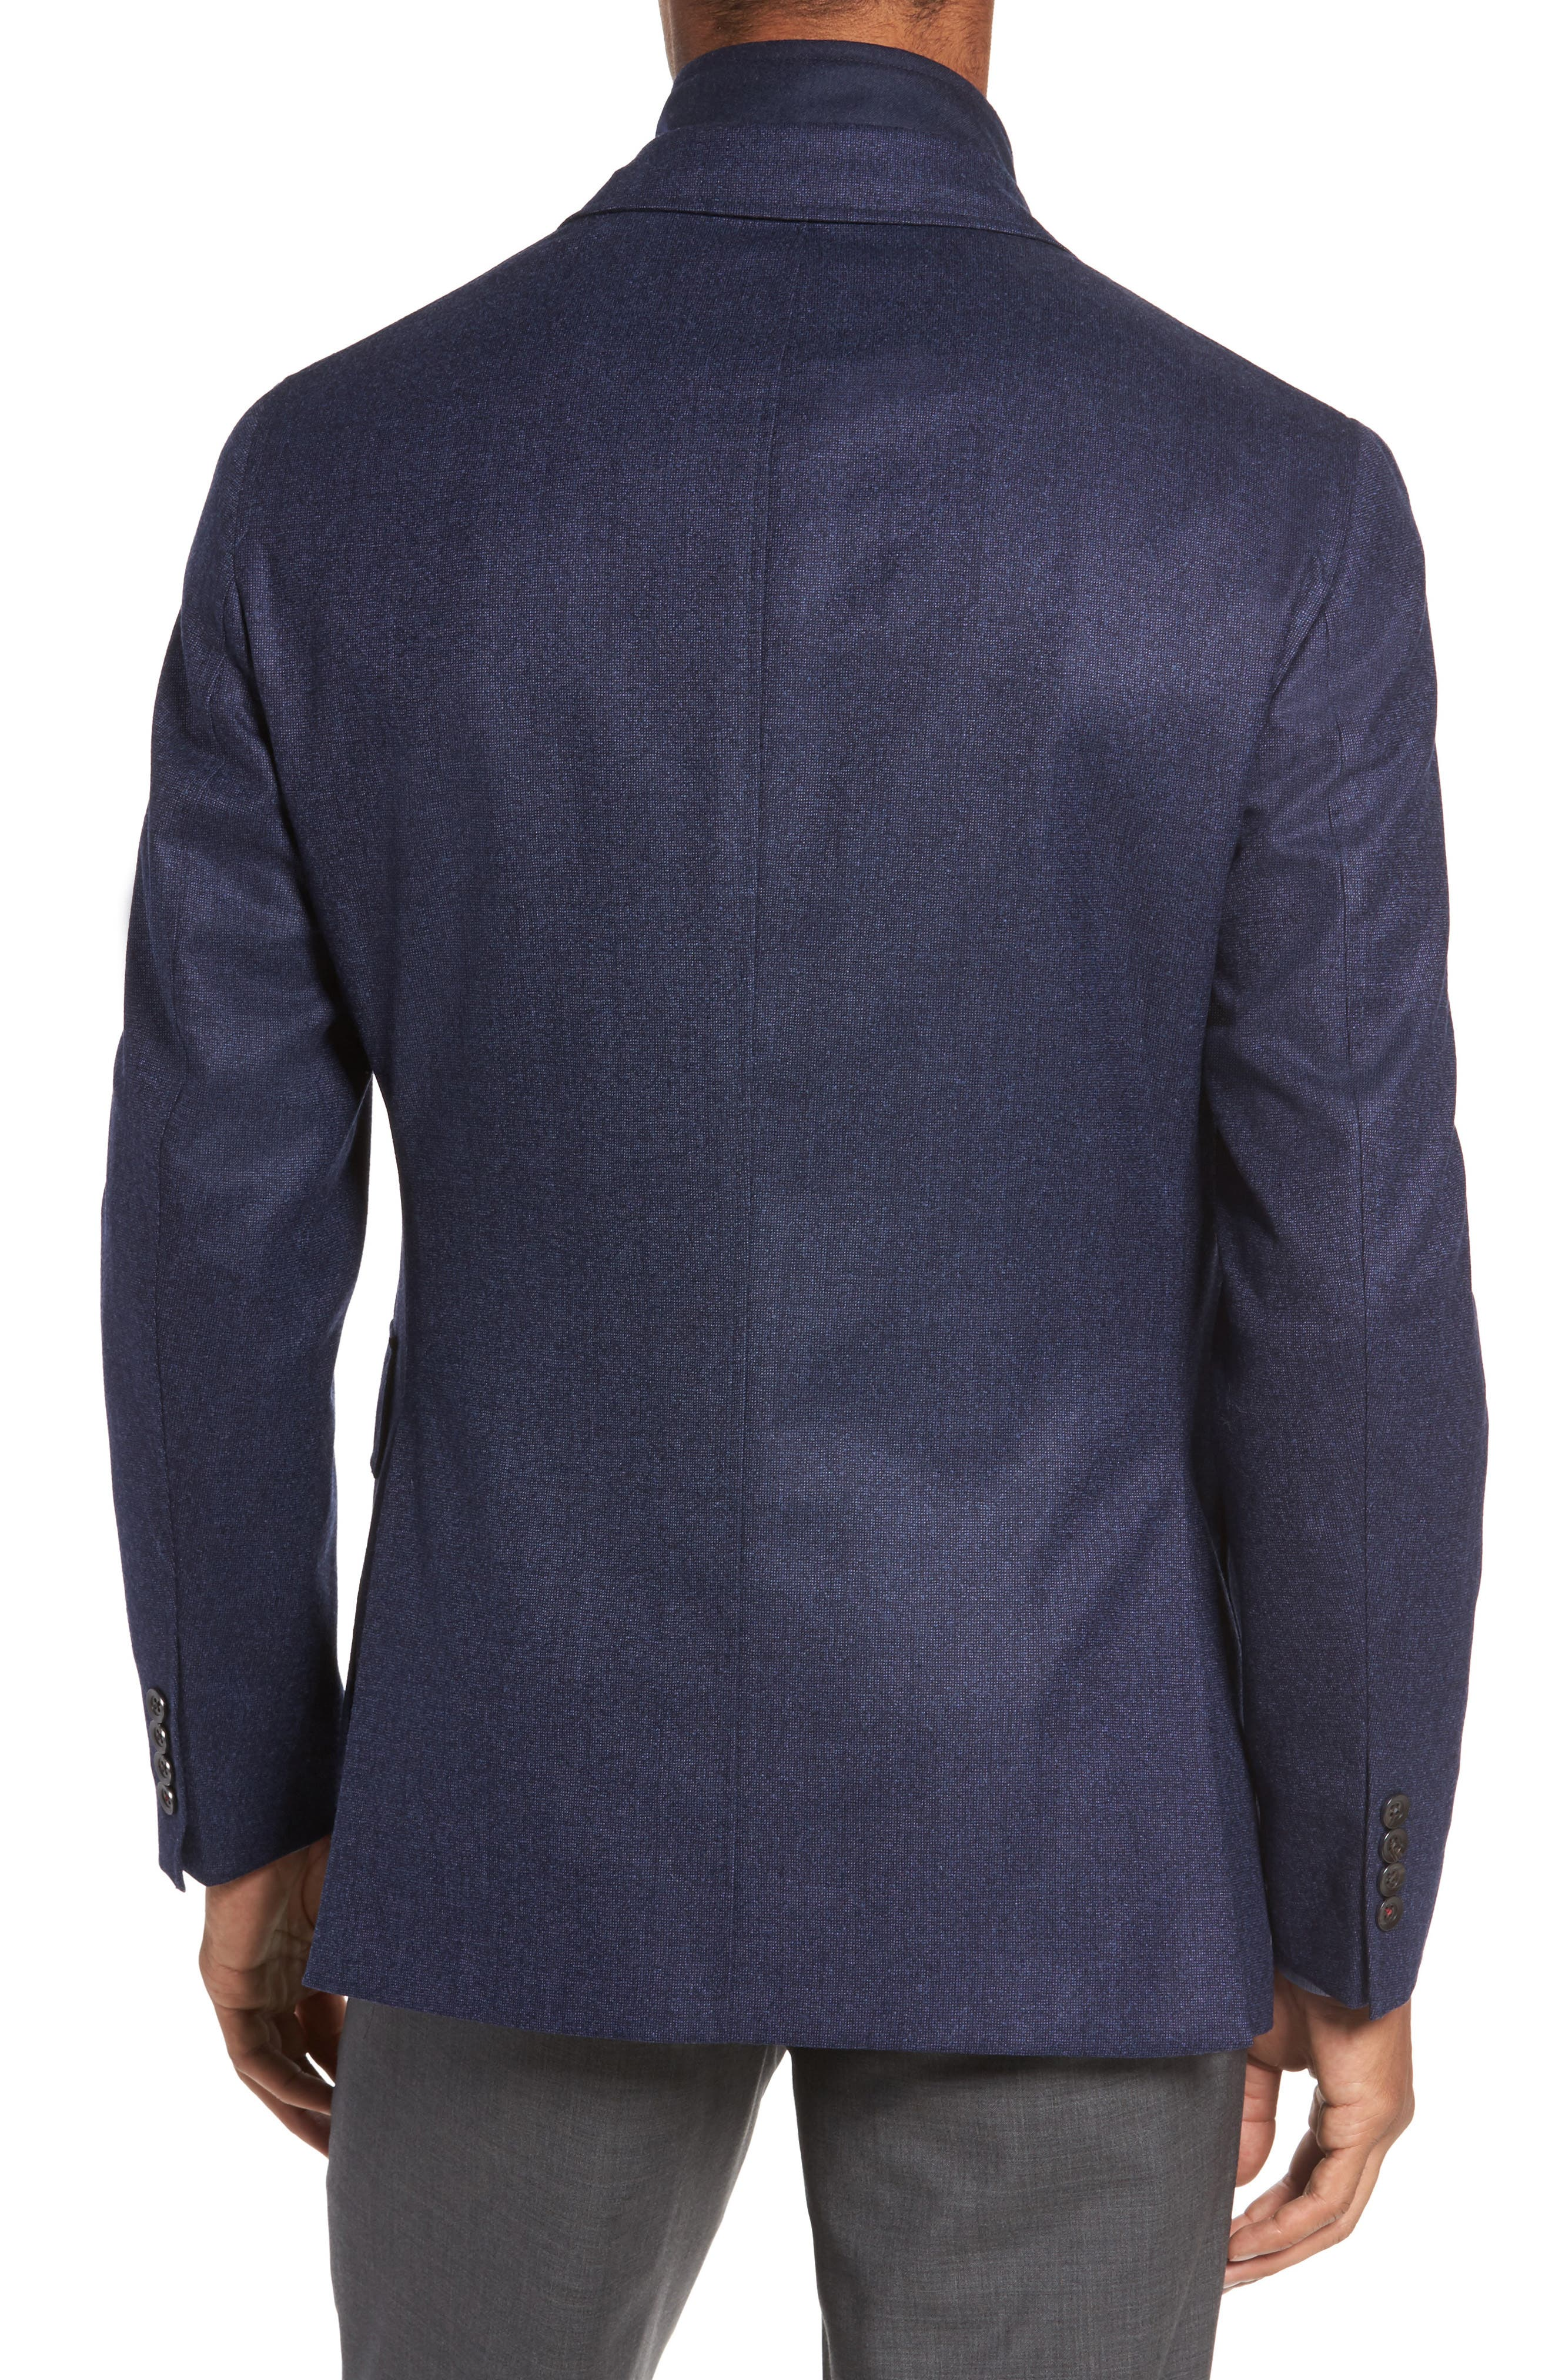 Aaron Classic Fit Wool Blazer,                             Alternate thumbnail 2, color,                             410